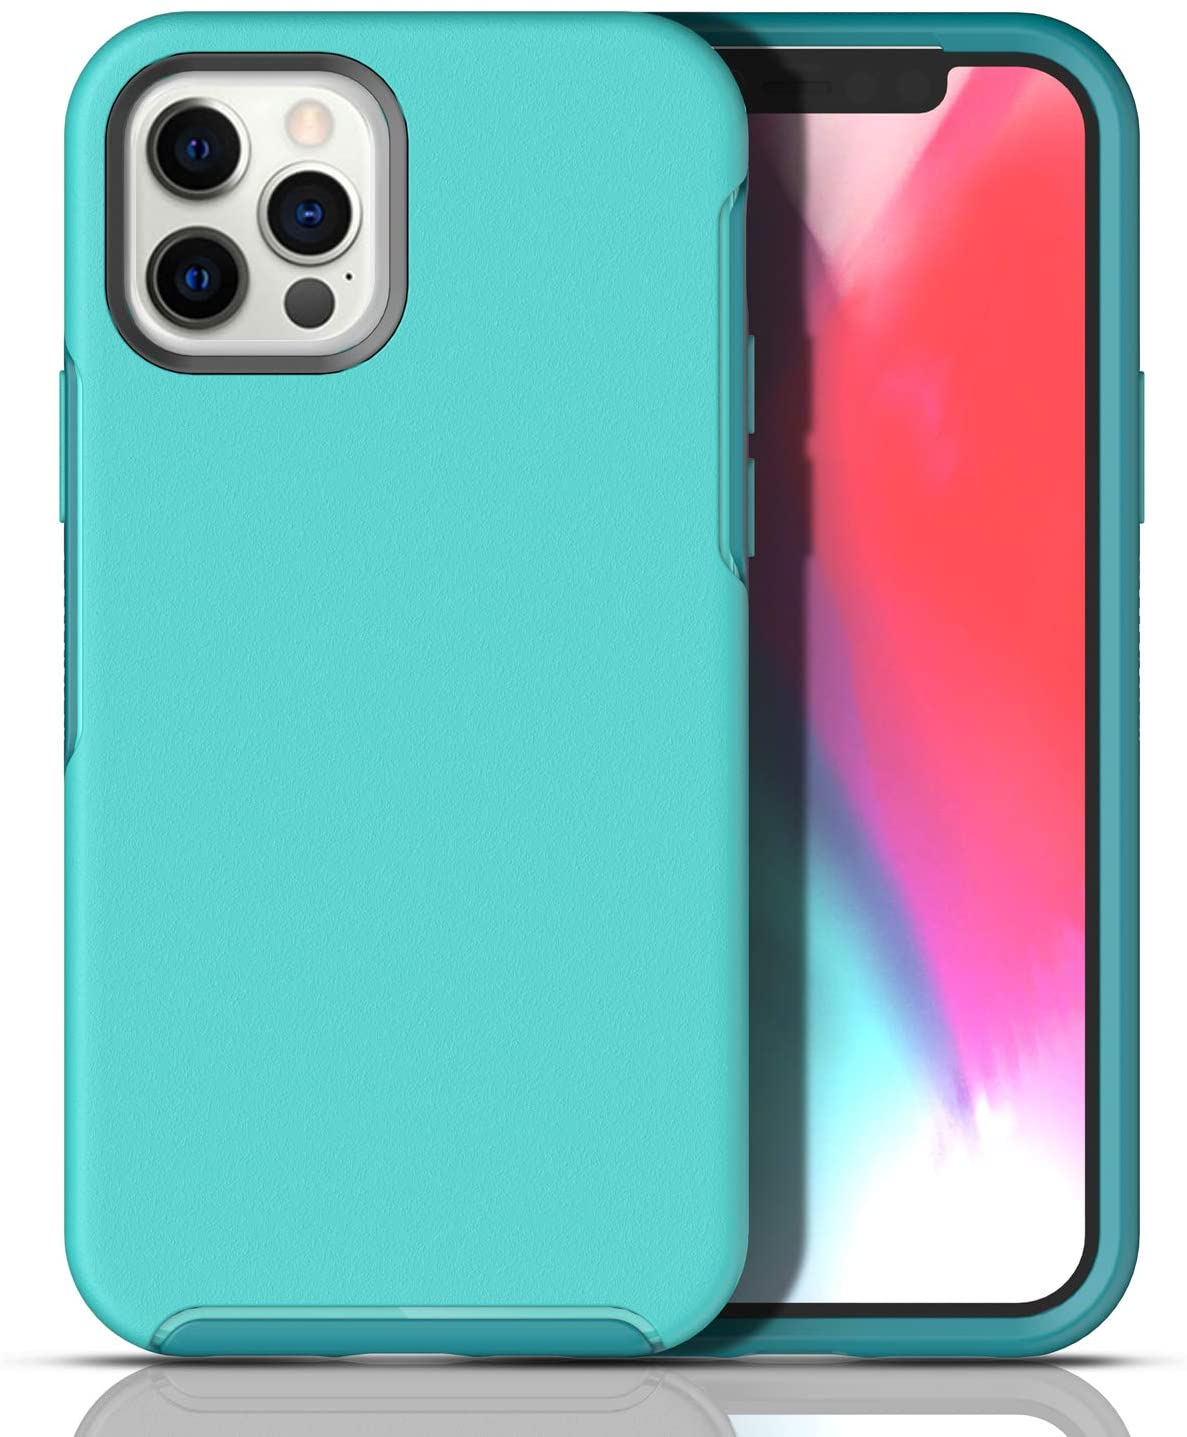 Laiture Symmetry Series Compatible with iPhone 12 Pro Max Case/Compatible with iPhone 12 Pro Max Case (2020), Rugged Shockproof Soft TPU Protective 6.7 Inch (iPhone 12 Pro Max, Aqua)